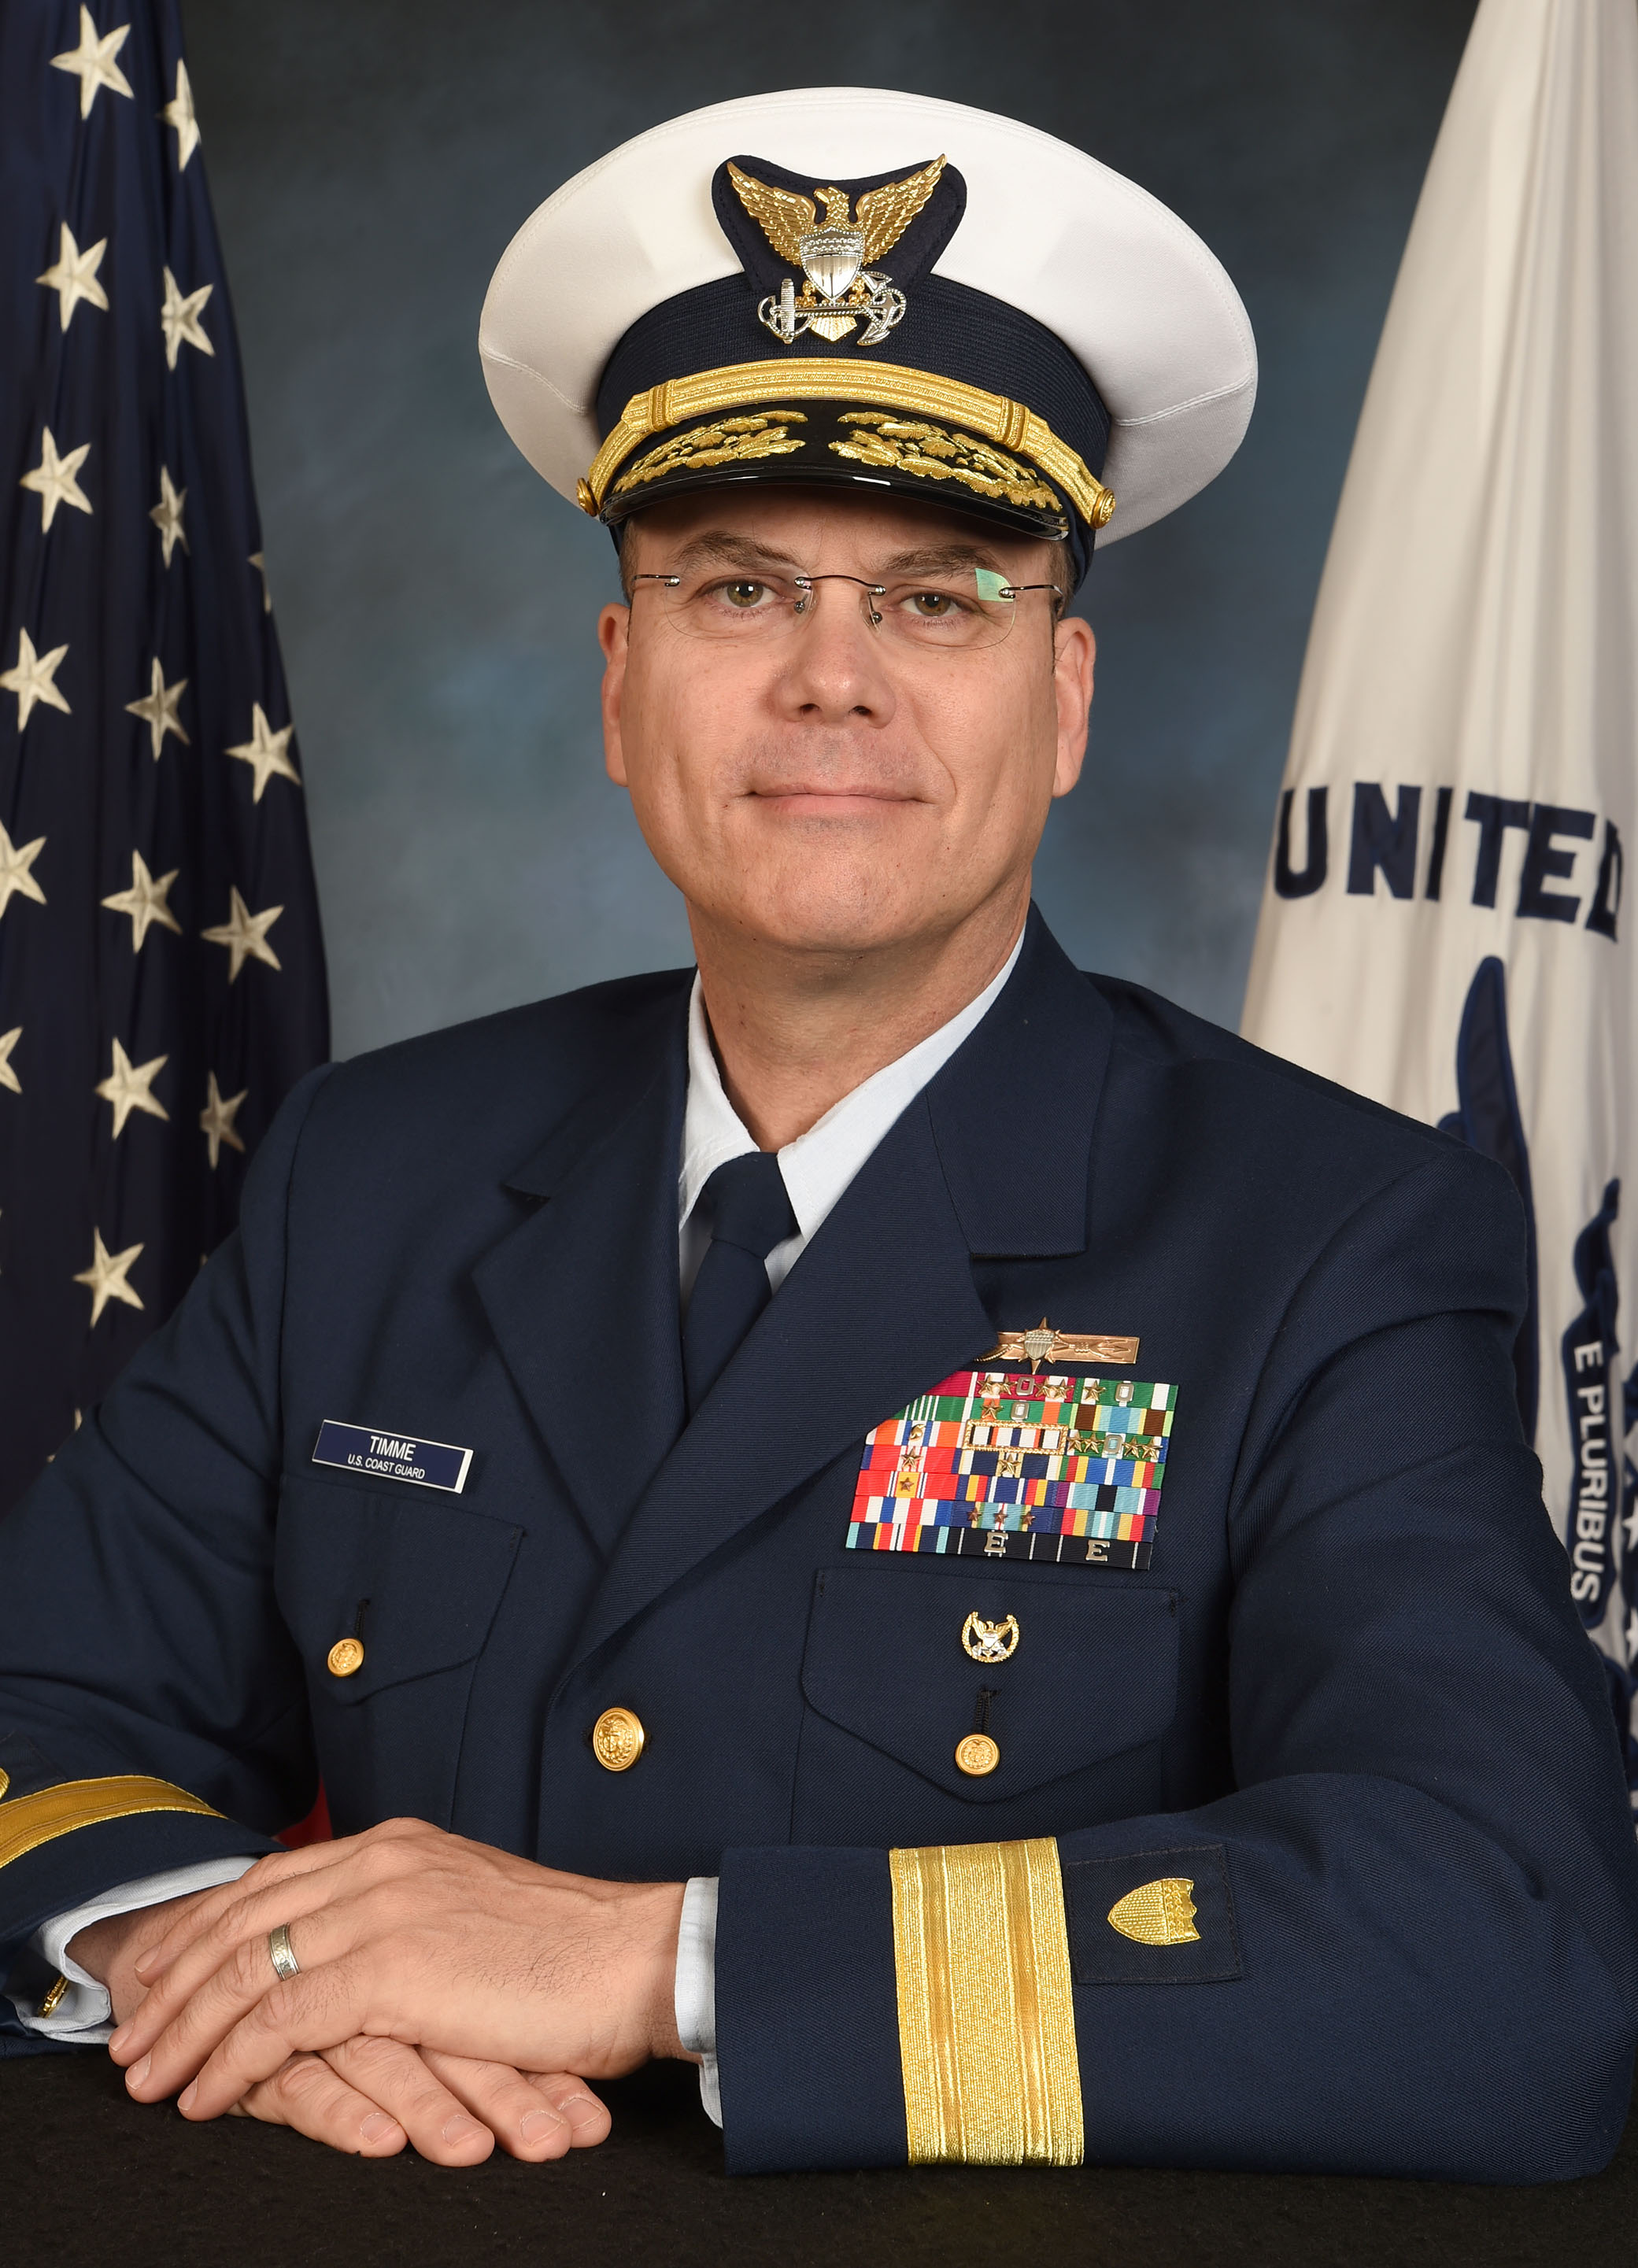 Rear Admiral Richard V. Timme